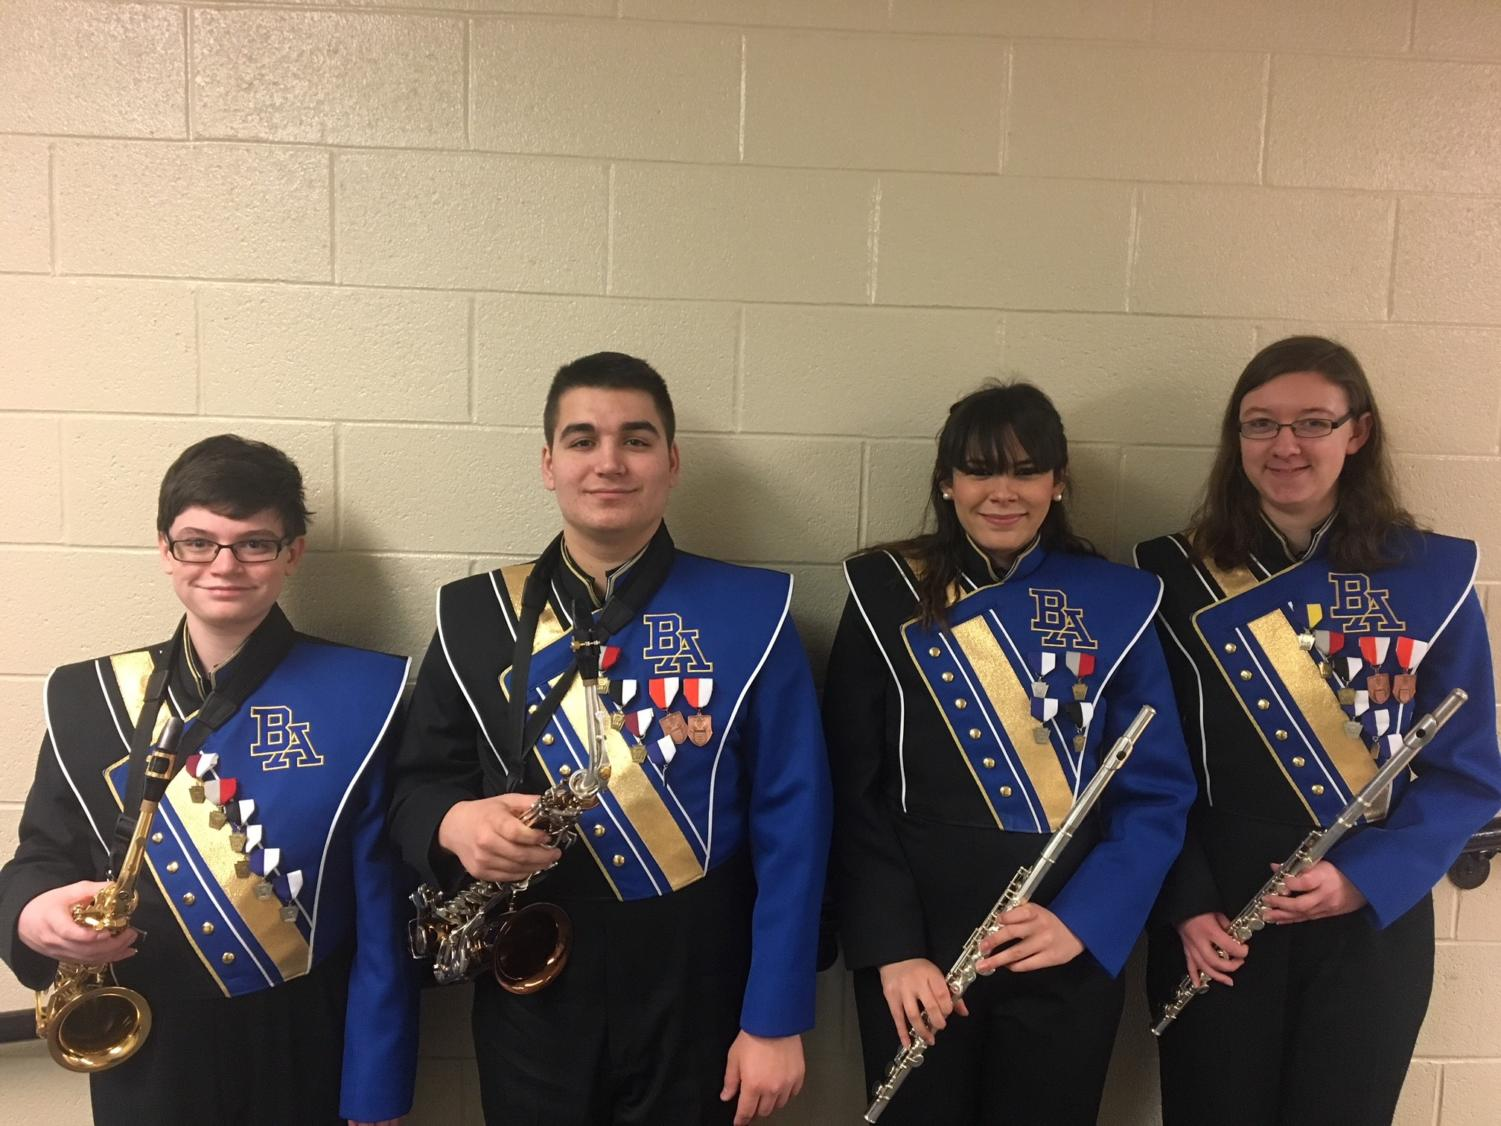 Alex Foose, Dominic Tornatore, Alanna Vaglica, and Kaitlyn Farber played last weekend at Region band.